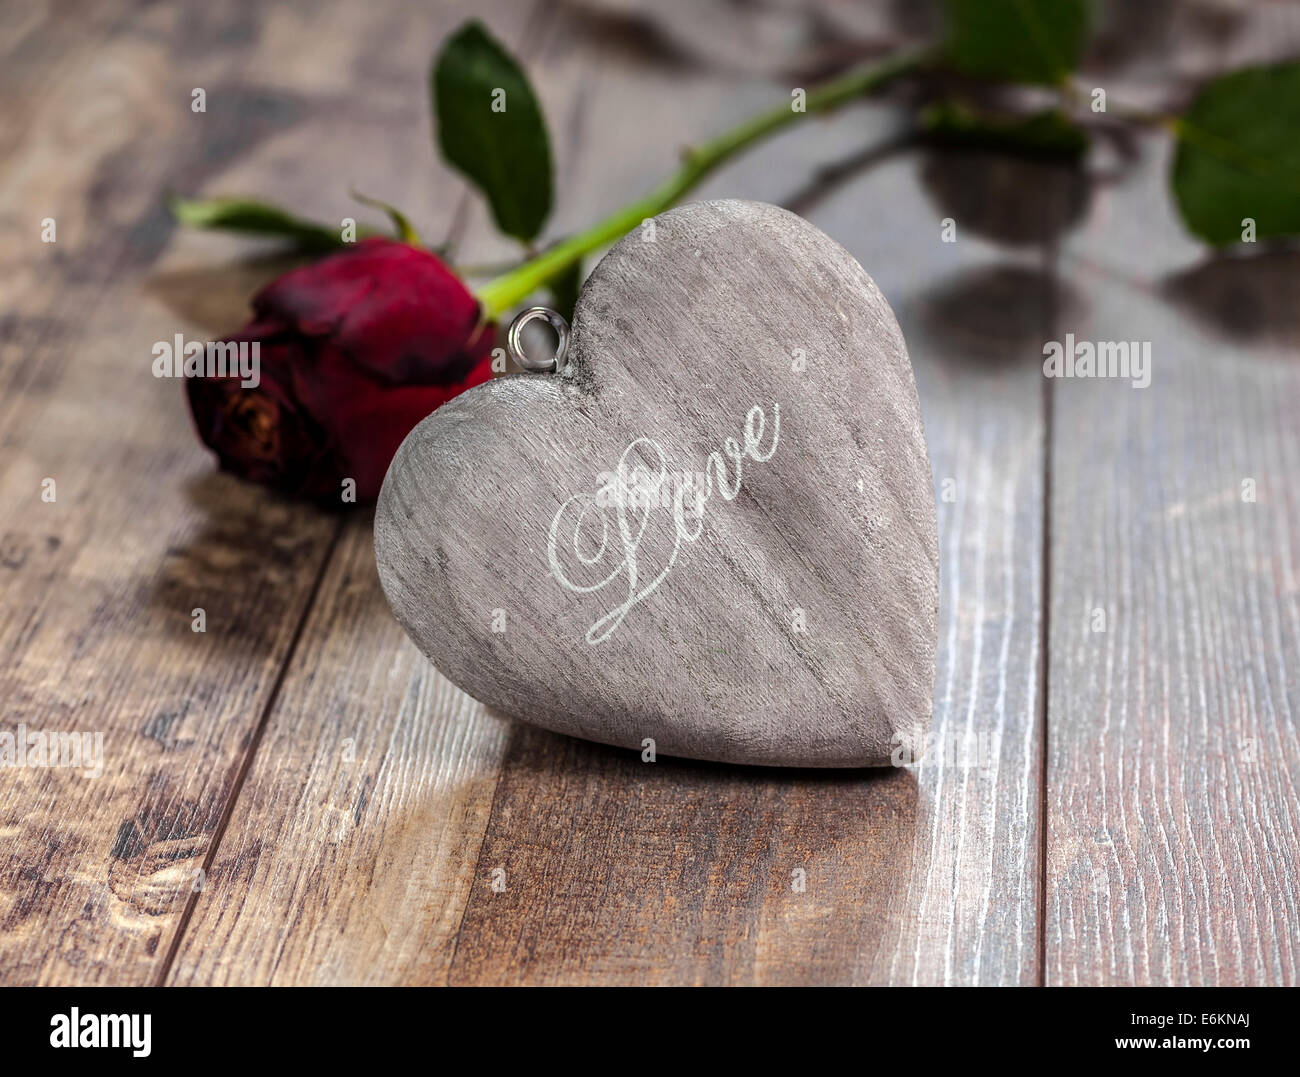 Symbole de la Saint-Valentin. Coeur sur un fond de bois de rose rouge. Photo Stock